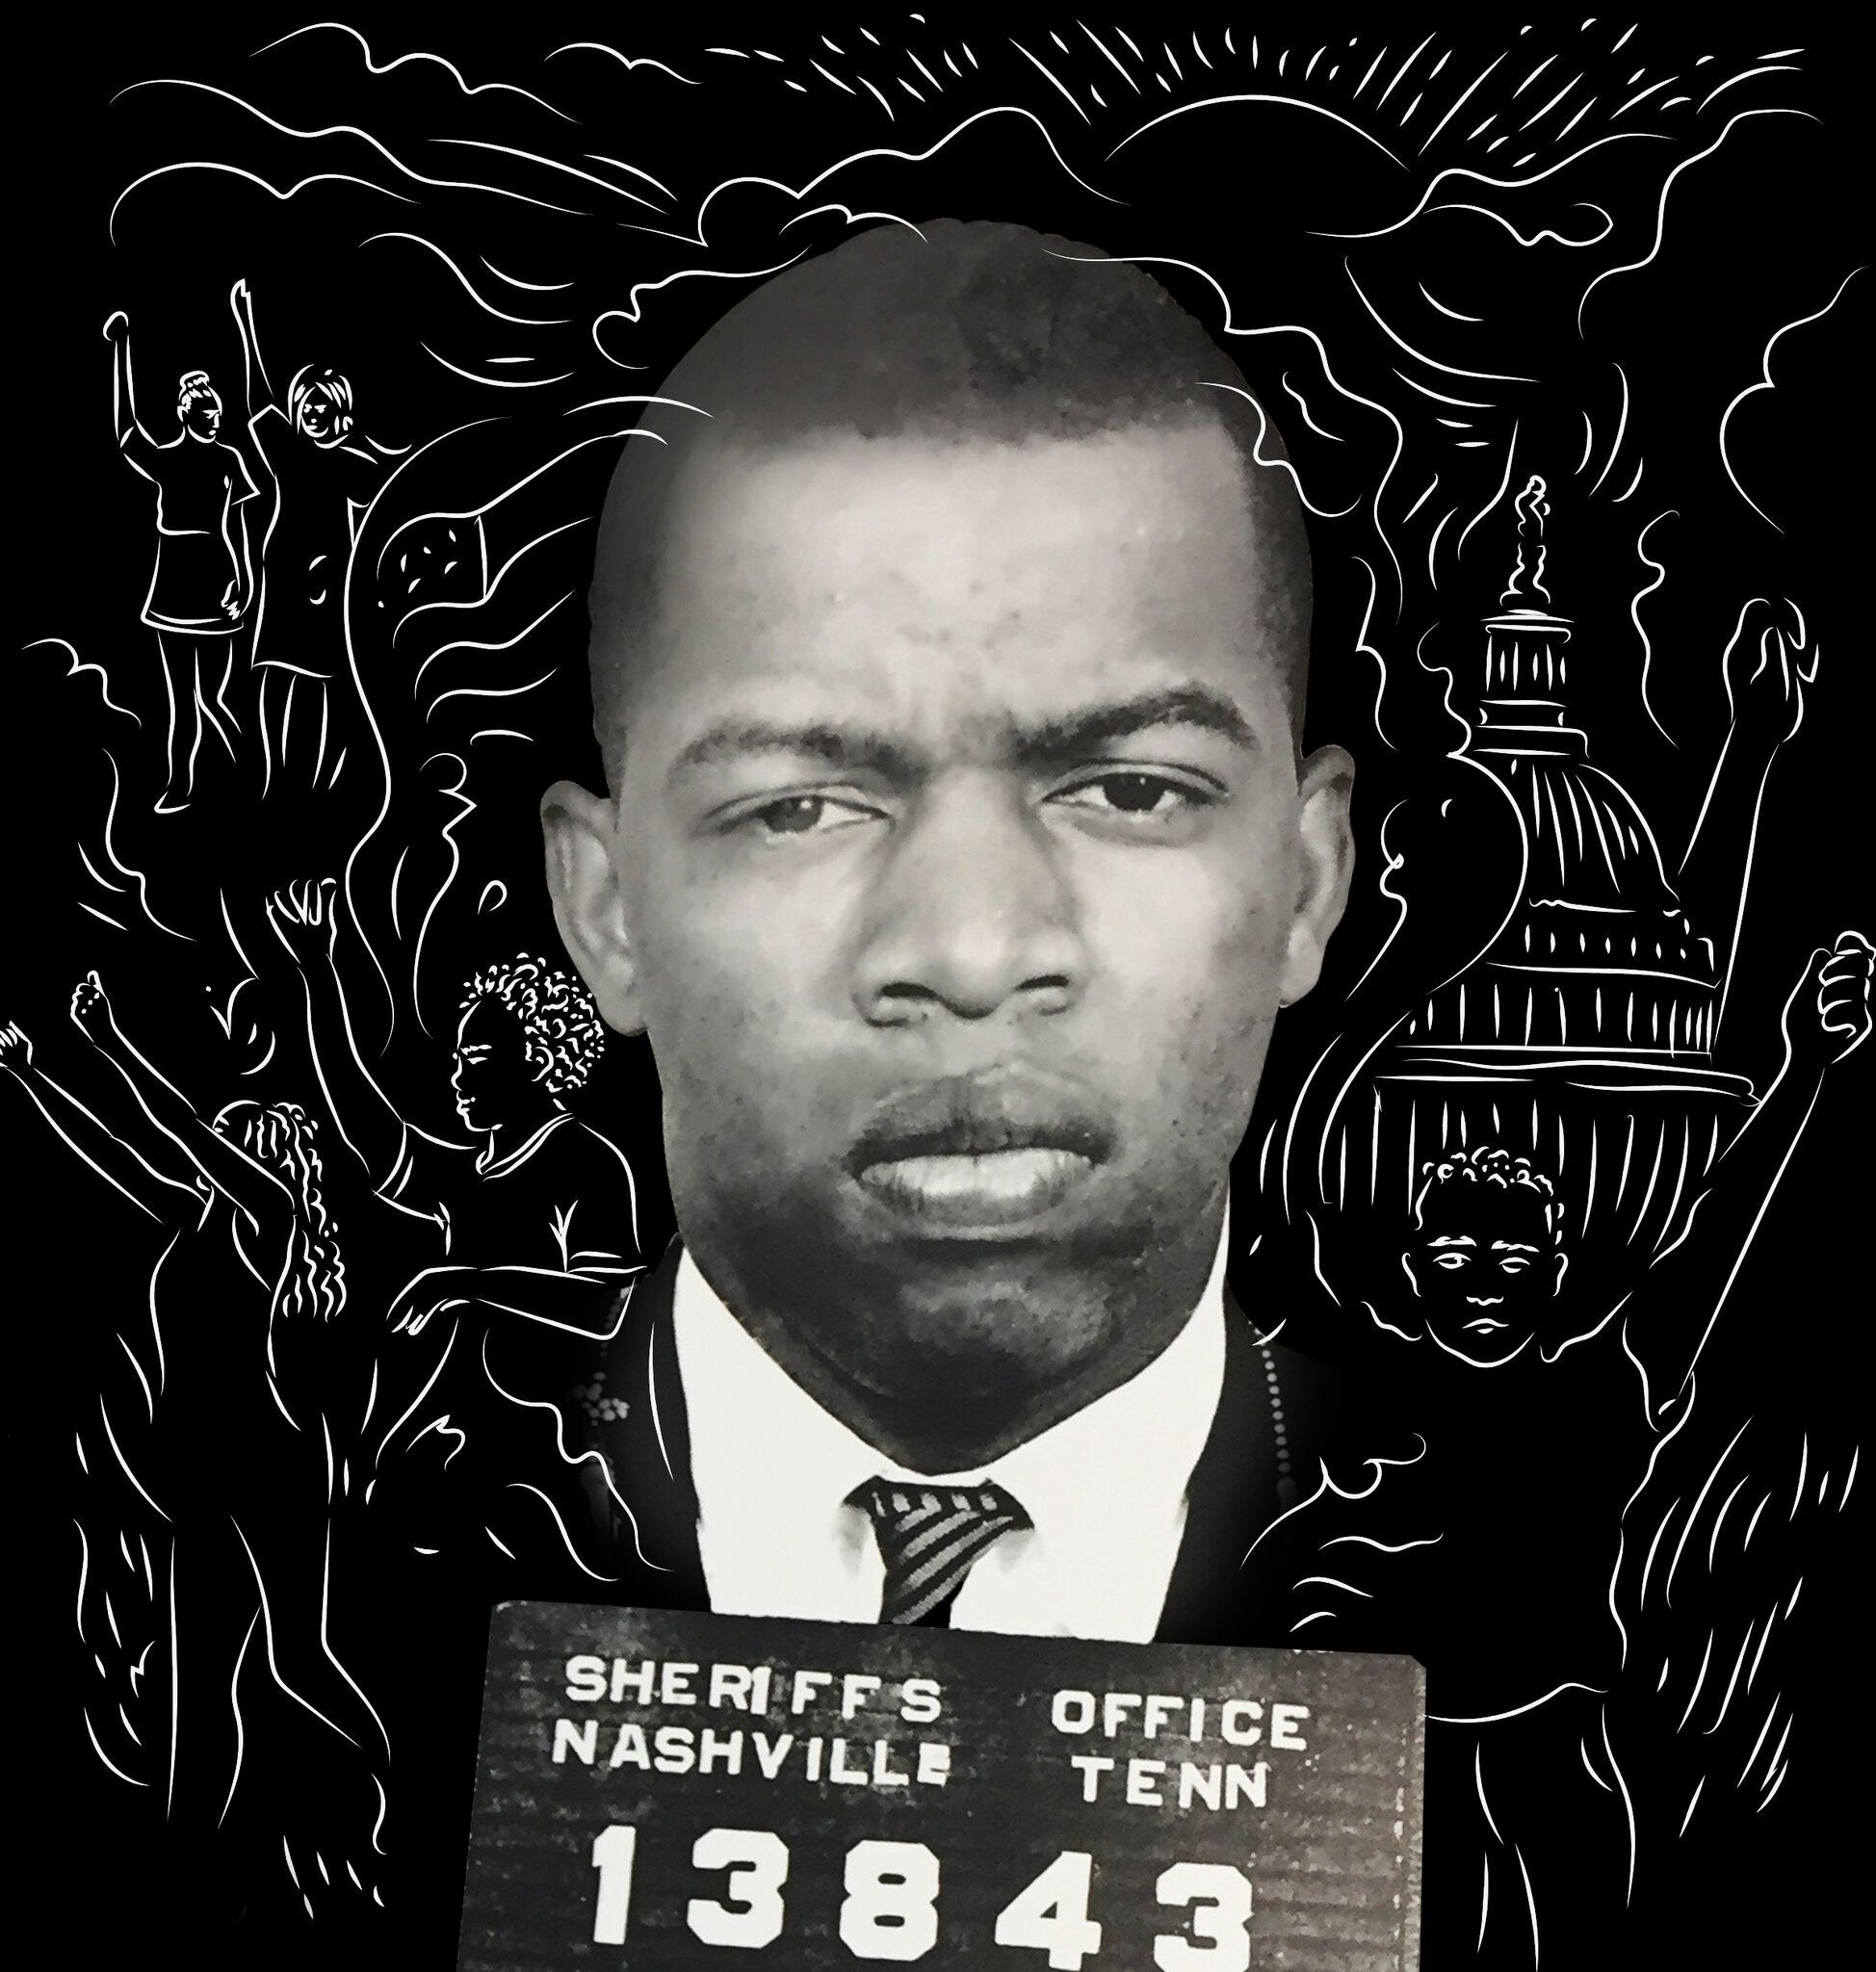 Opinion John Lewis Risked His Life For Justice John Lewis Civil Rights Leaders Racial Justice